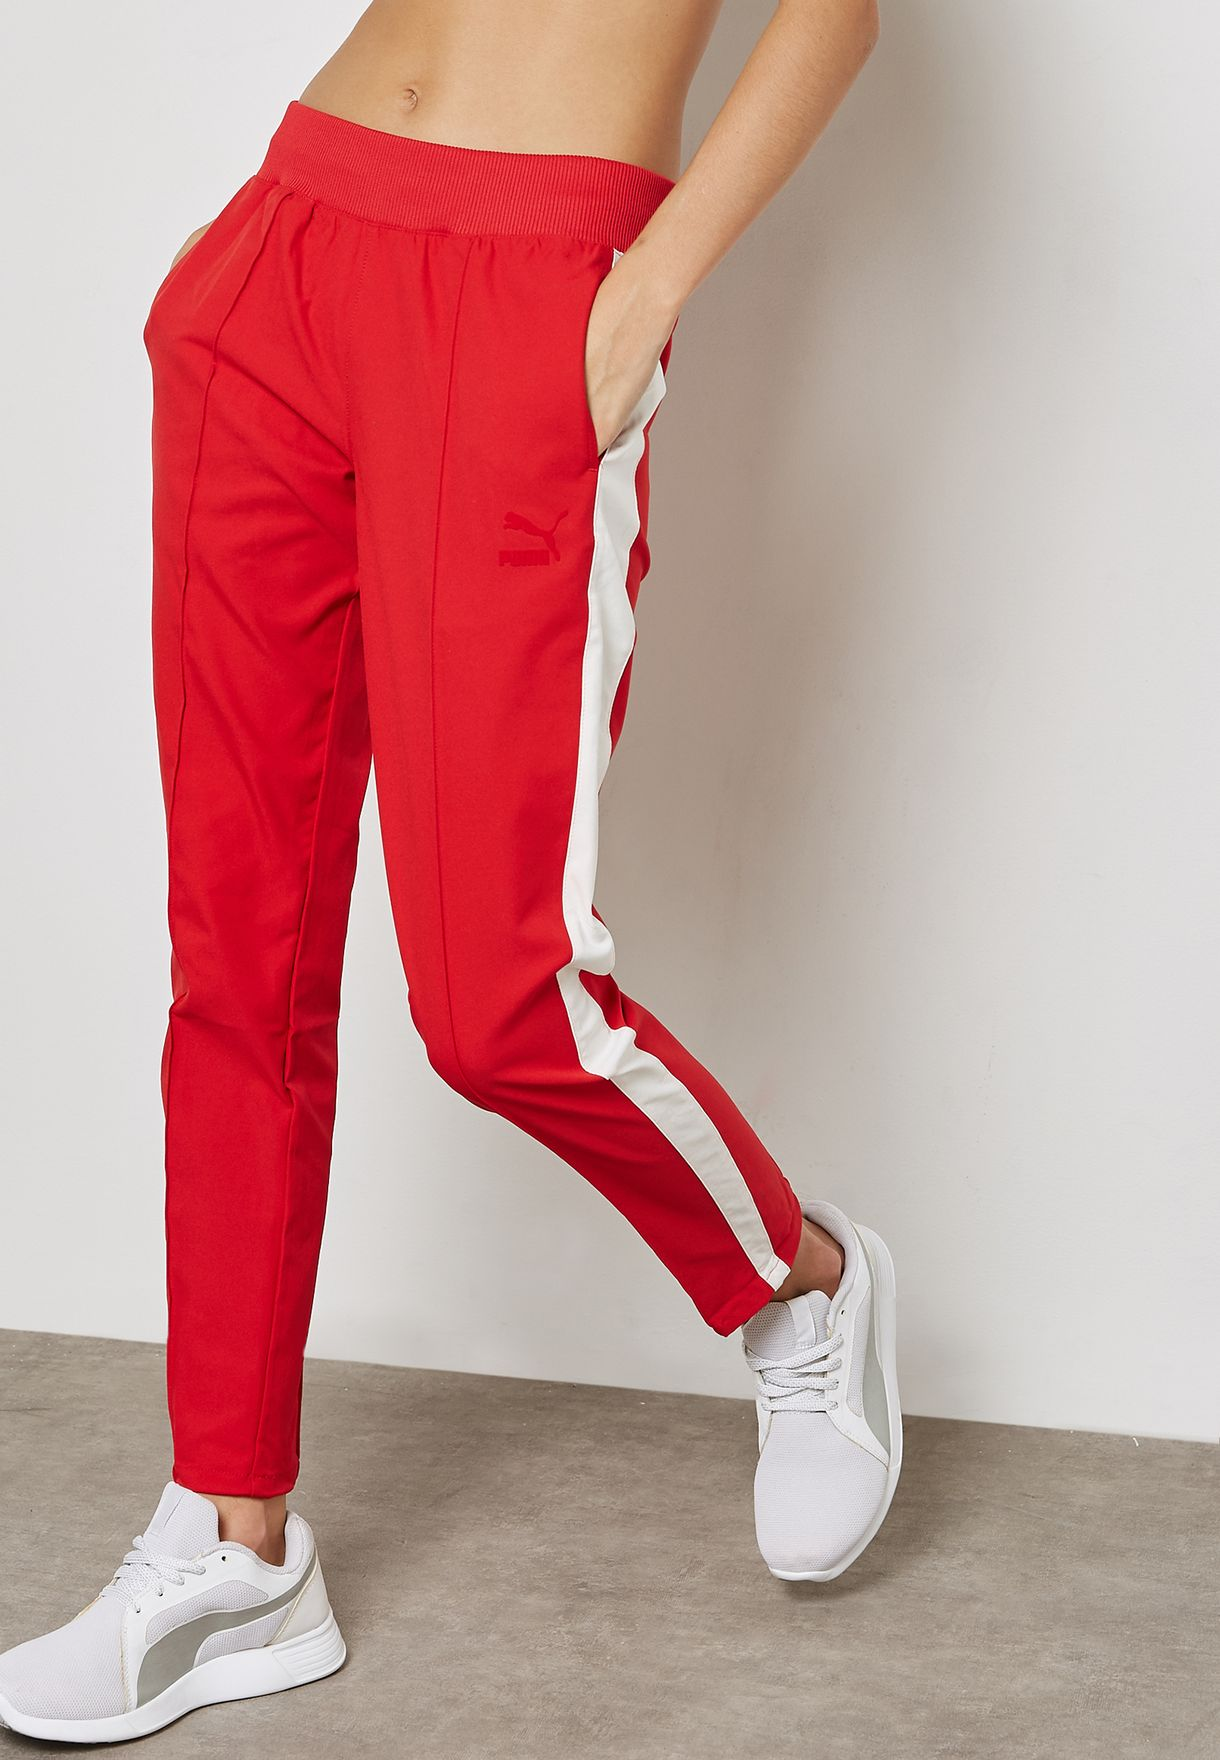 2019 authentic new high quality online Archive Stir Sweatpants